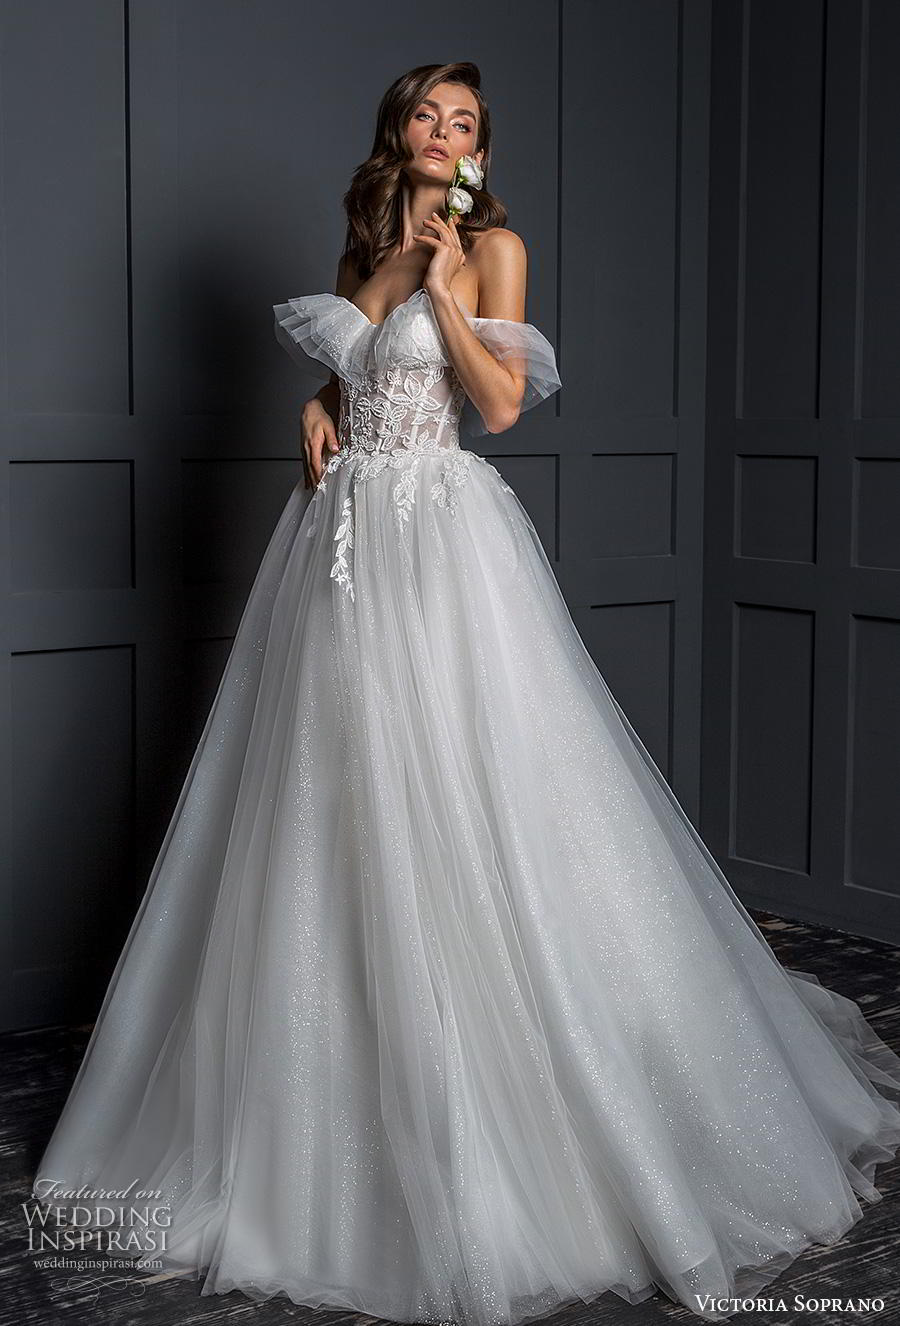 victoria soprano 2020 bridal off the shoulder sweetheart necklne heavily embellished bodice romantic ball gown a line wedding dress mid back chapel train (6) mv